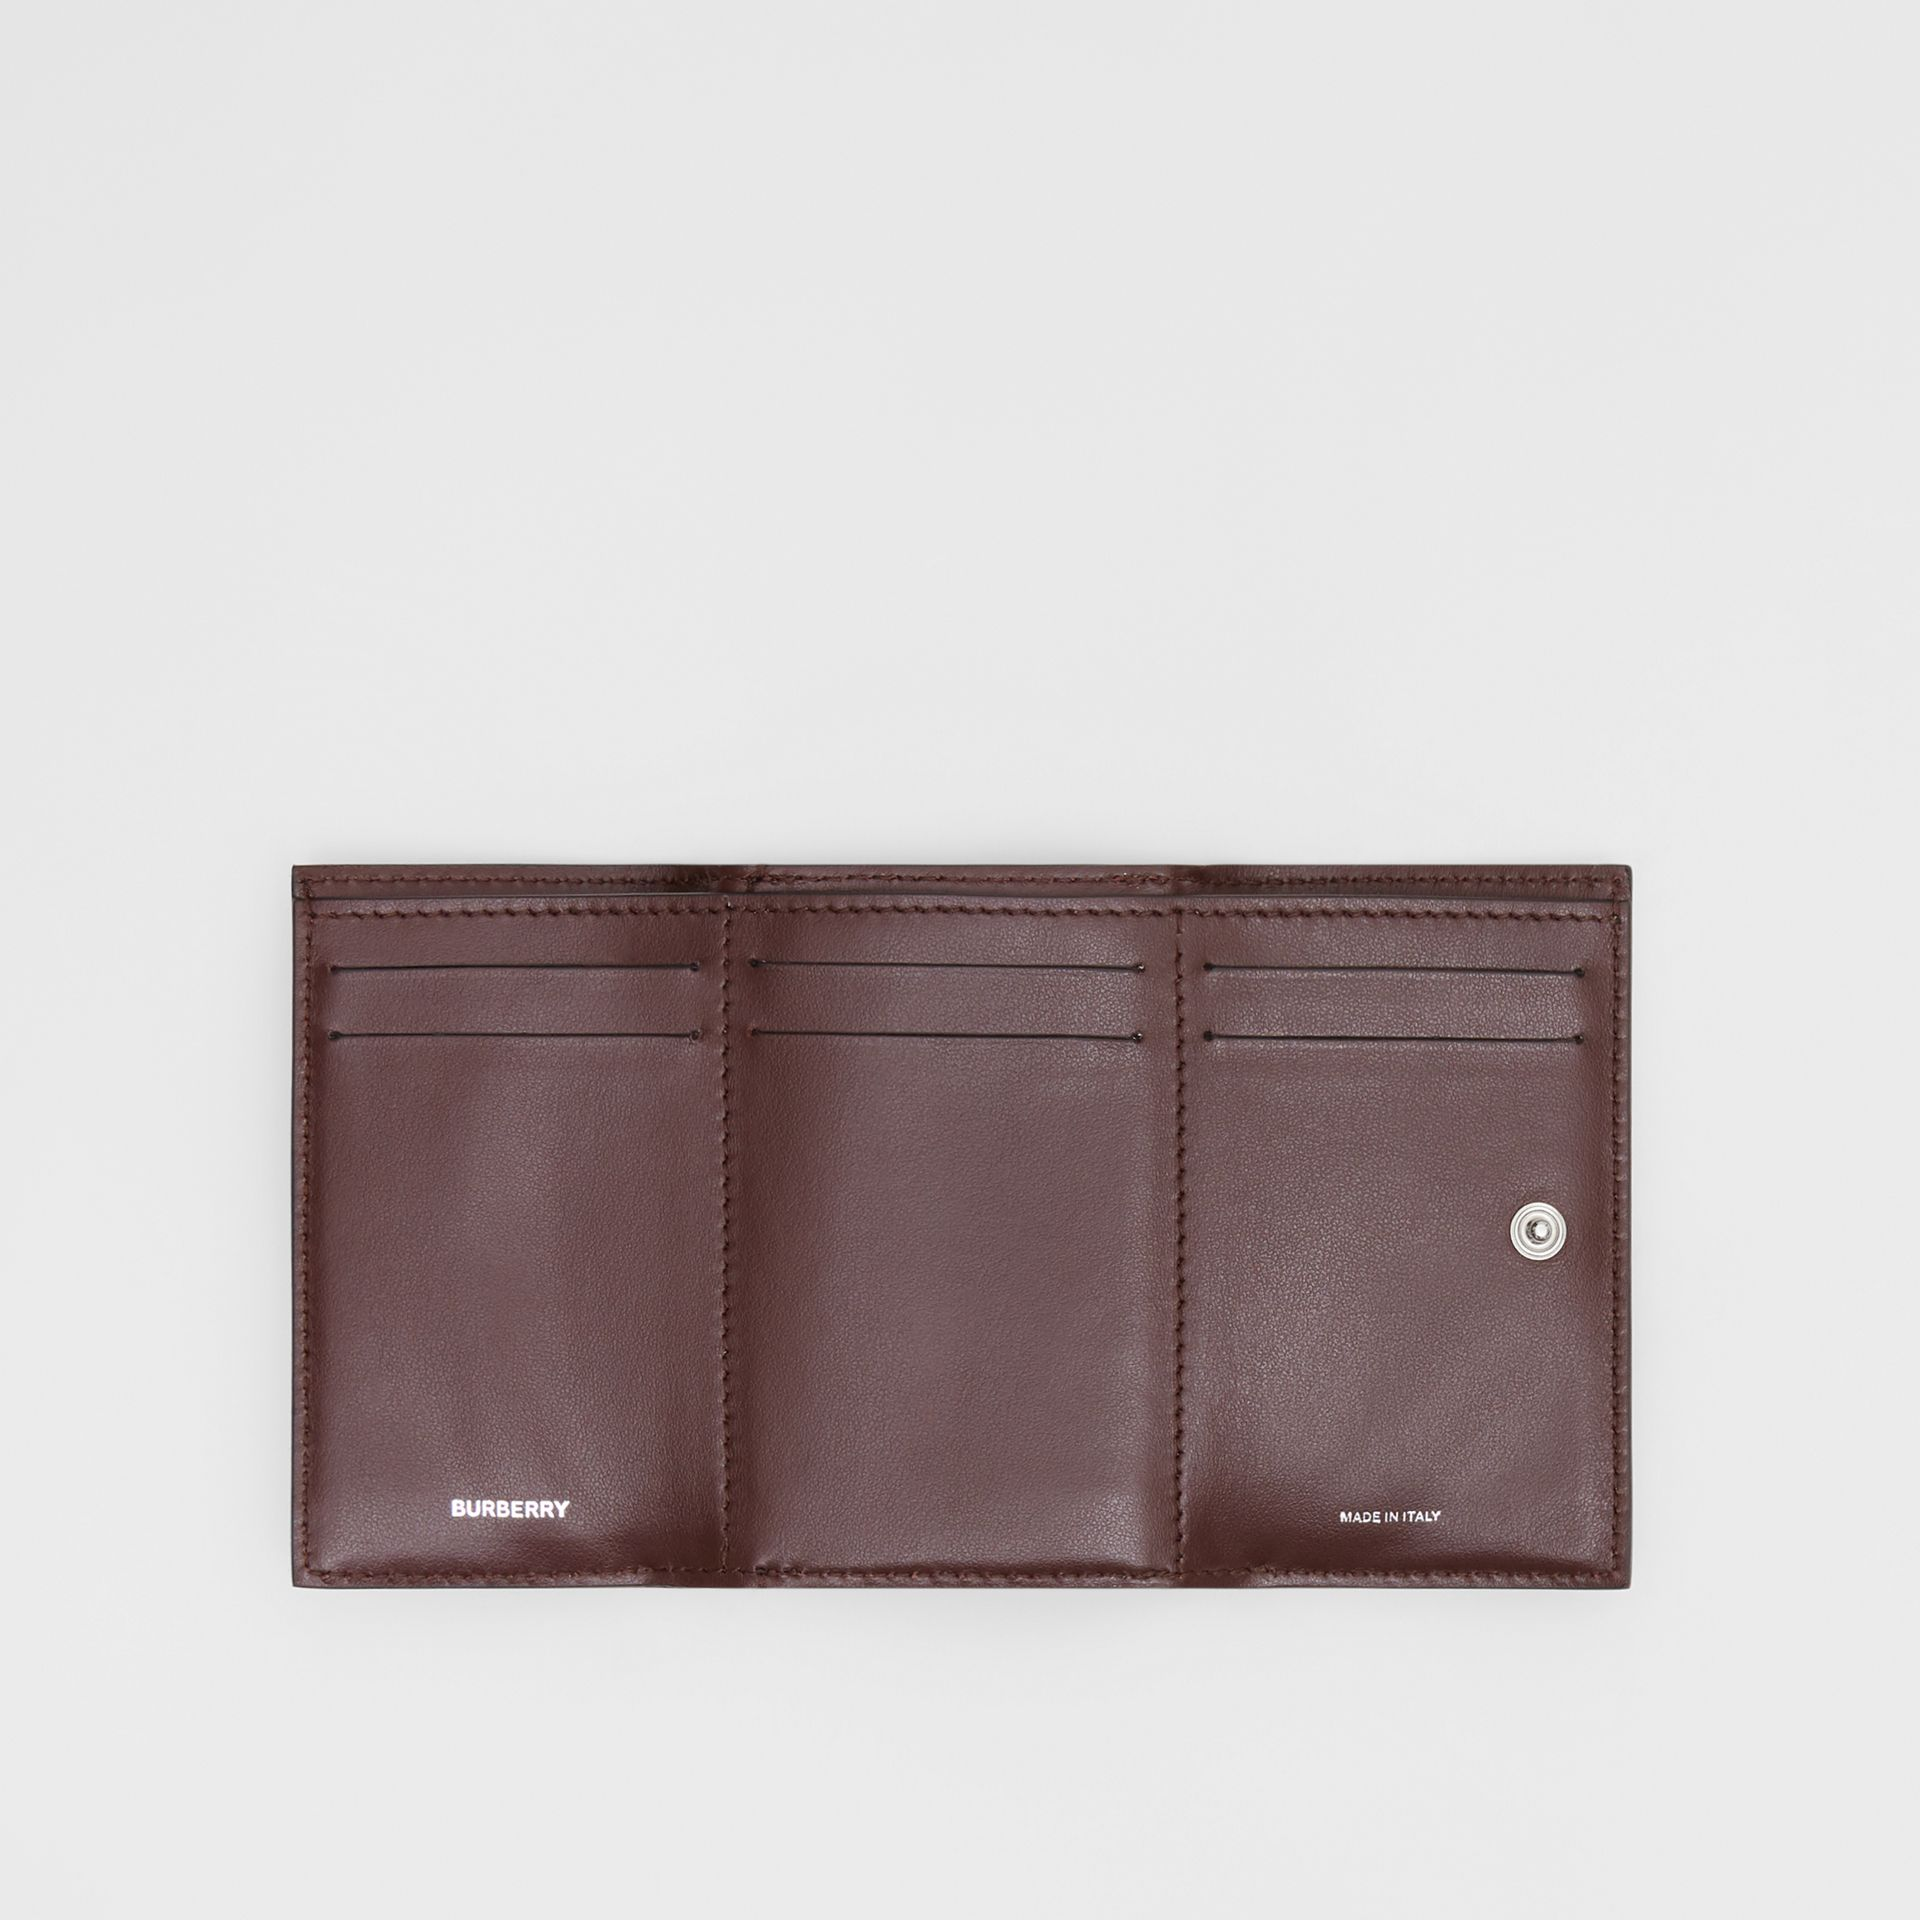 Small Cow Print Leather Folding Wallet in Malt Brown - Women | Burberry Canada - gallery image 5